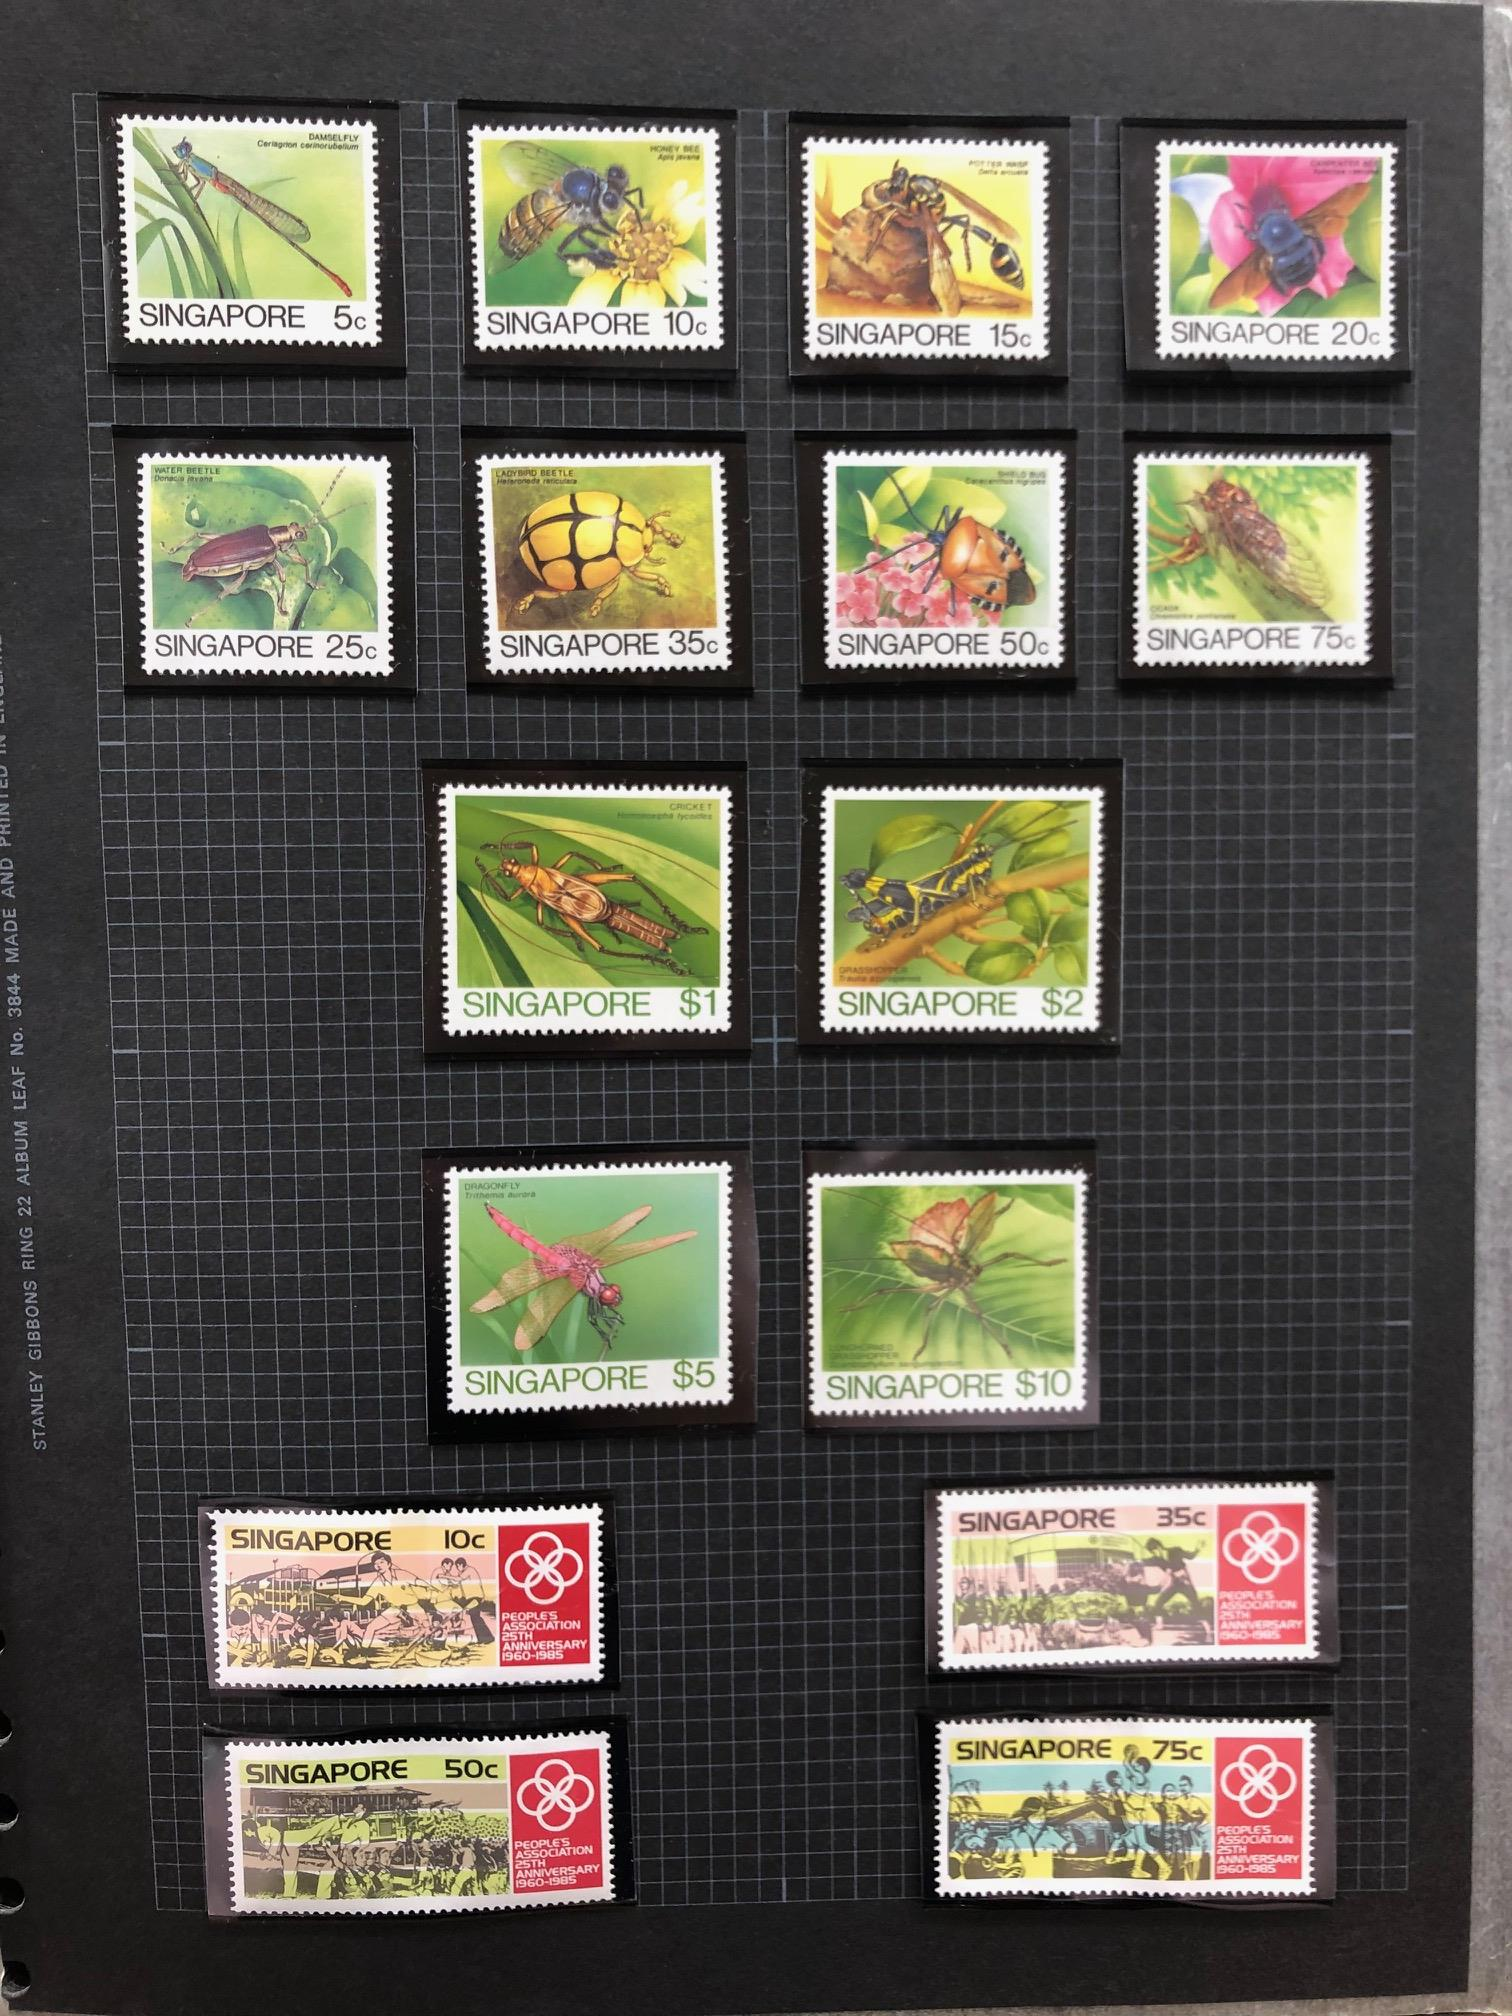 SINGAPORE 1980 - 1993 um collection in album with what appears to be a complete run of commem sets - Image 2 of 2